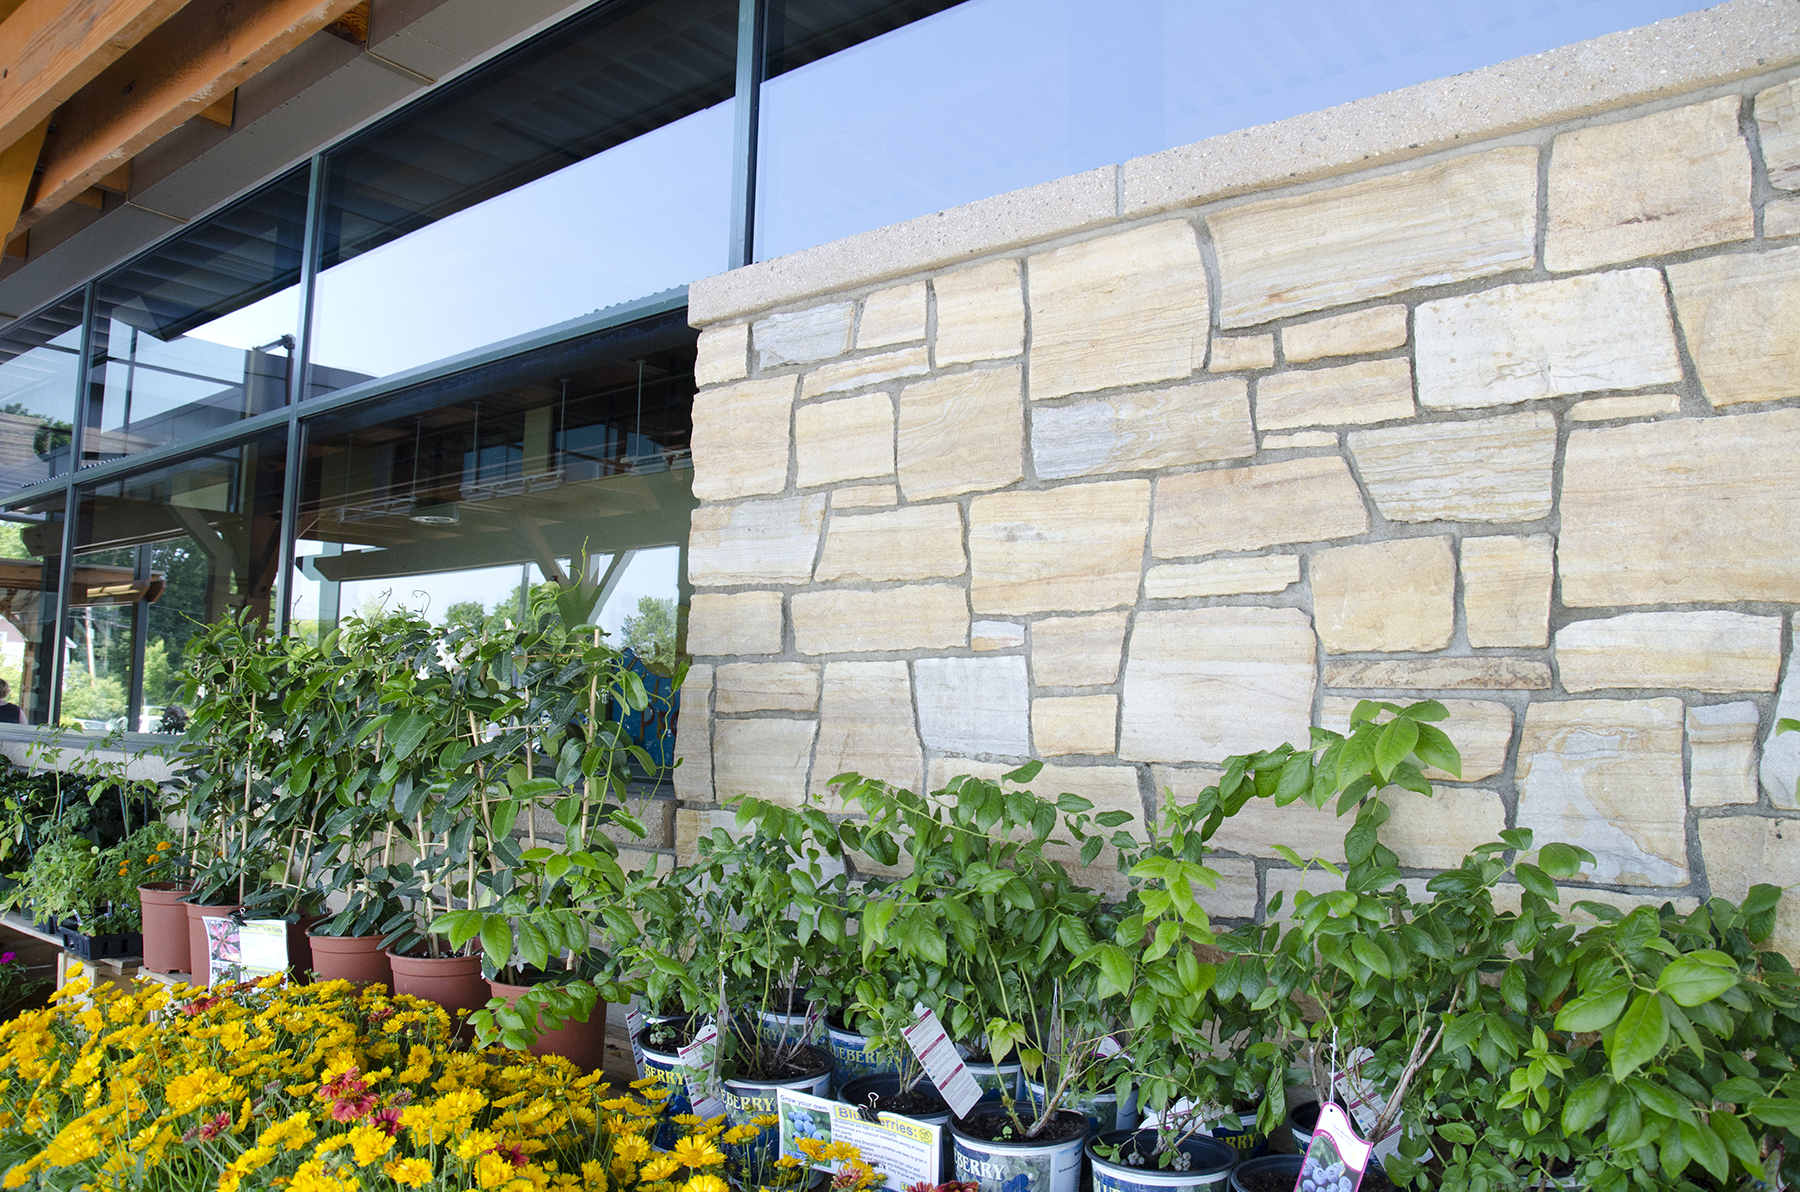 stone wall with plants and flowers for sale